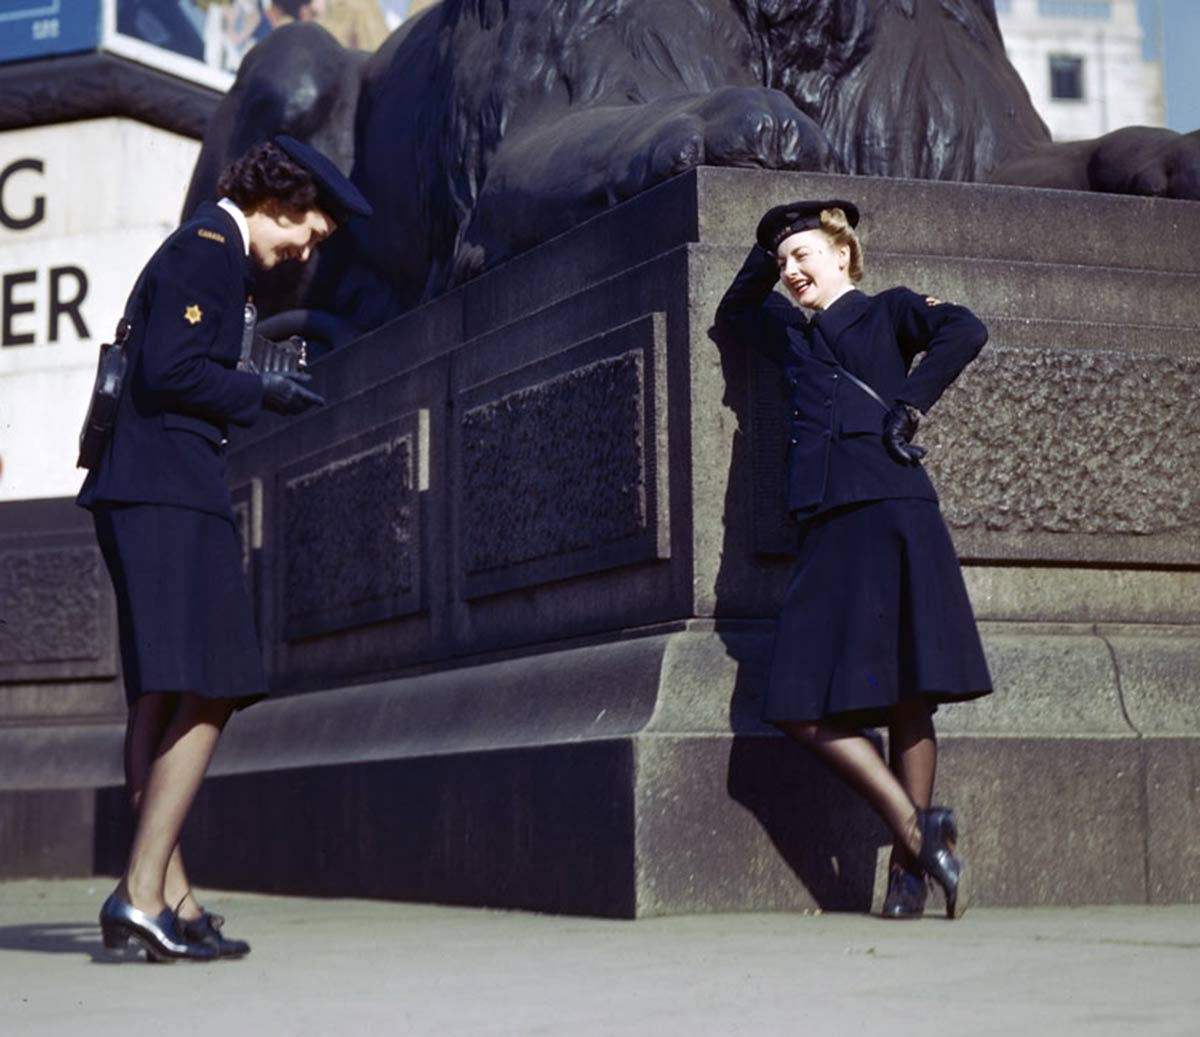 Two-WRCNS-girls-in-Trafalgar-Sq-London-1942